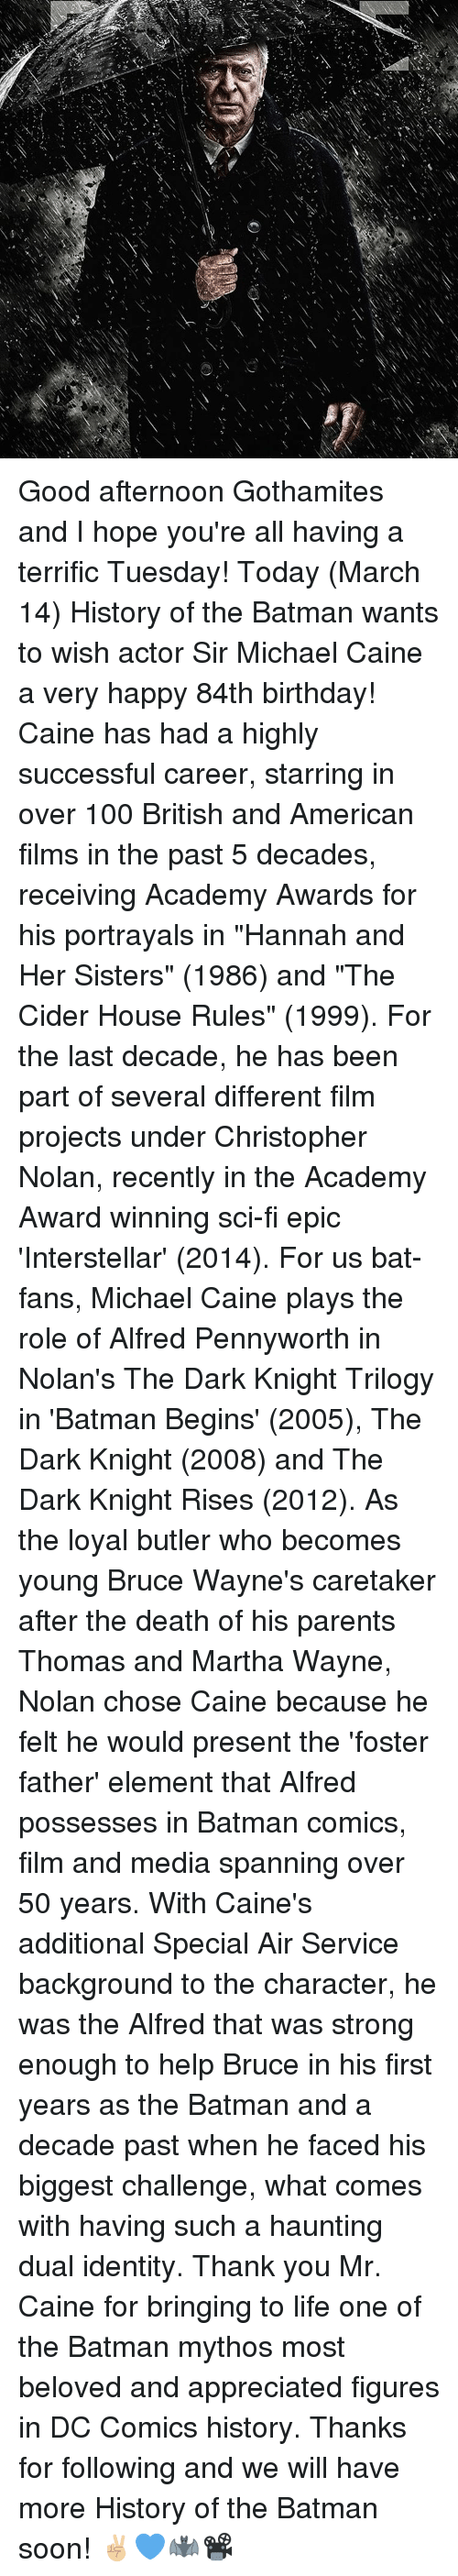 """Interstellar, Memes, and The Dark Knight: 6) Good afternoon Gothamites and I hope you're all having a terrific Tuesday! Today (March 14) History of the Batman wants to wish actor Sir Michael Caine a very happy 84th birthday! Caine has had a highly successful career, starring in over 100 British and American films in the past 5 decades, receiving Academy Awards for his portrayals in """"Hannah and Her Sisters"""" (1986) and """"The Cider House Rules"""" (1999). For the last decade, he has been part of several different film projects under Christopher Nolan, recently in the Academy Award winning sci-fi epic 'Interstellar' (2014). For us bat-fans, Michael Caine plays the role of Alfred Pennyworth in Nolan's The Dark Knight Trilogy in 'Batman Begins' (2005), The Dark Knight (2008) and The Dark Knight Rises (2012). As the loyal butler who becomes young Bruce Wayne's caretaker after the death of his parents Thomas and Martha Wayne, Nolan chose Caine because he felt he would present the 'foster father' element that Alfred possesses in Batman comics, film and media spanning over 50 years. With Caine's additional Special Air Service background to the character, he was the Alfred that was strong enough to help Bruce in his first years as the Batman and a decade past when he faced his biggest challenge, what comes with having such a haunting dual identity. Thank you Mr. Caine for bringing to life one of the Batman mythos most beloved and appreciated figures in DC Comics history. Thanks for following and we will have more History of the Batman soon! ✌🏼💙🦇📽"""